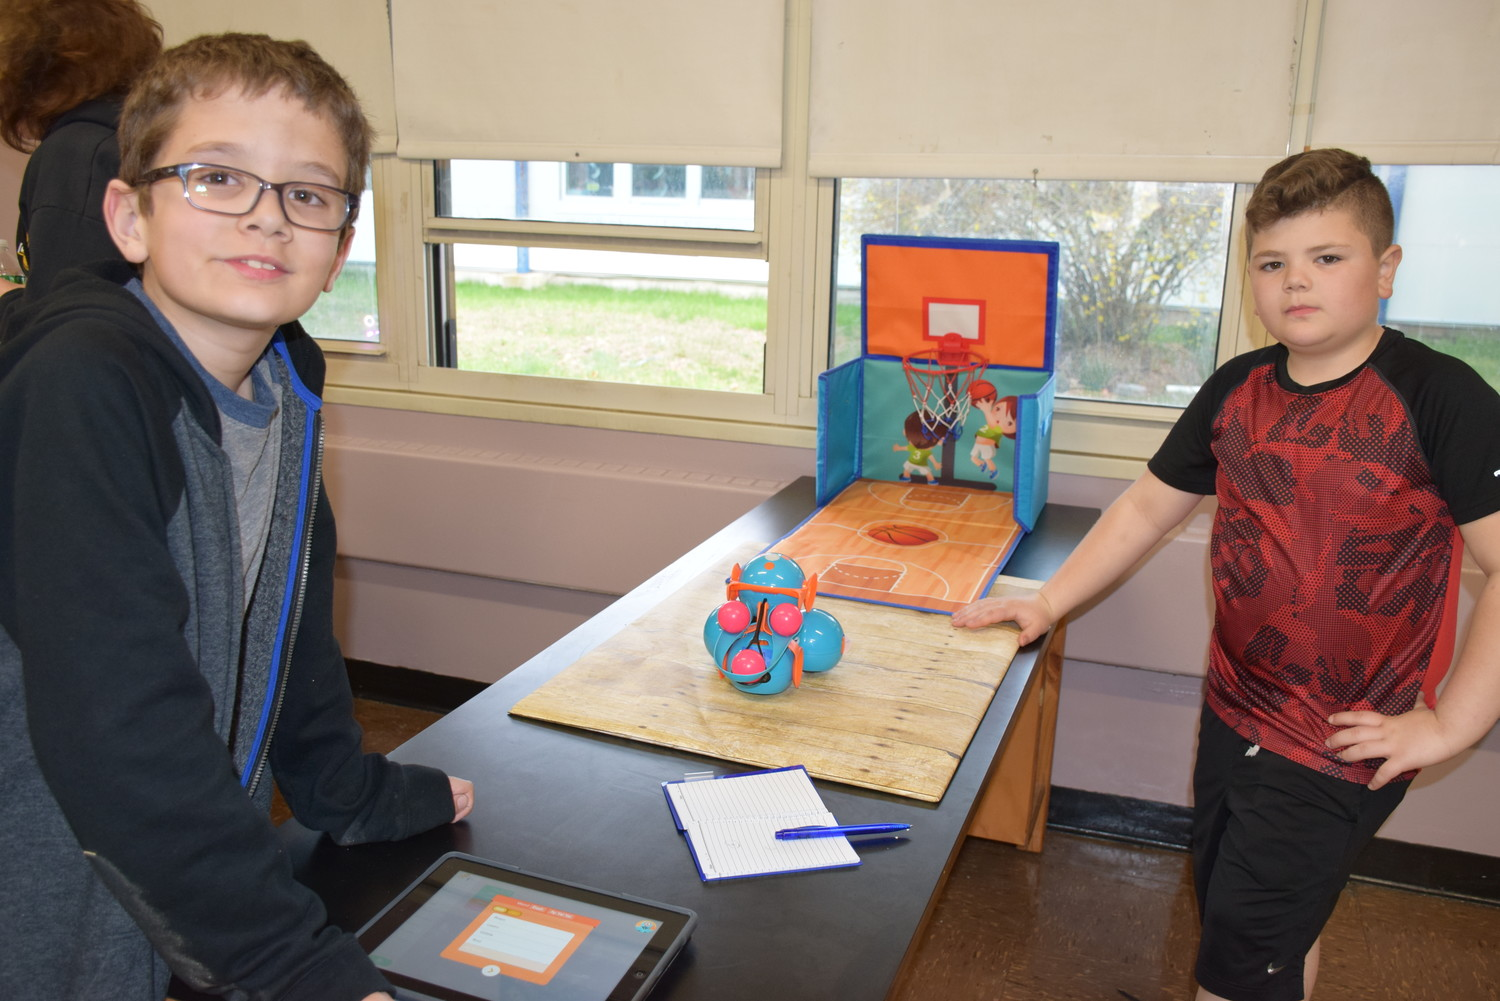 Fifth-grader Gregory Heym, left, and third-grader Joe Divella shoot some hoops by coding robots to take free throws for them.